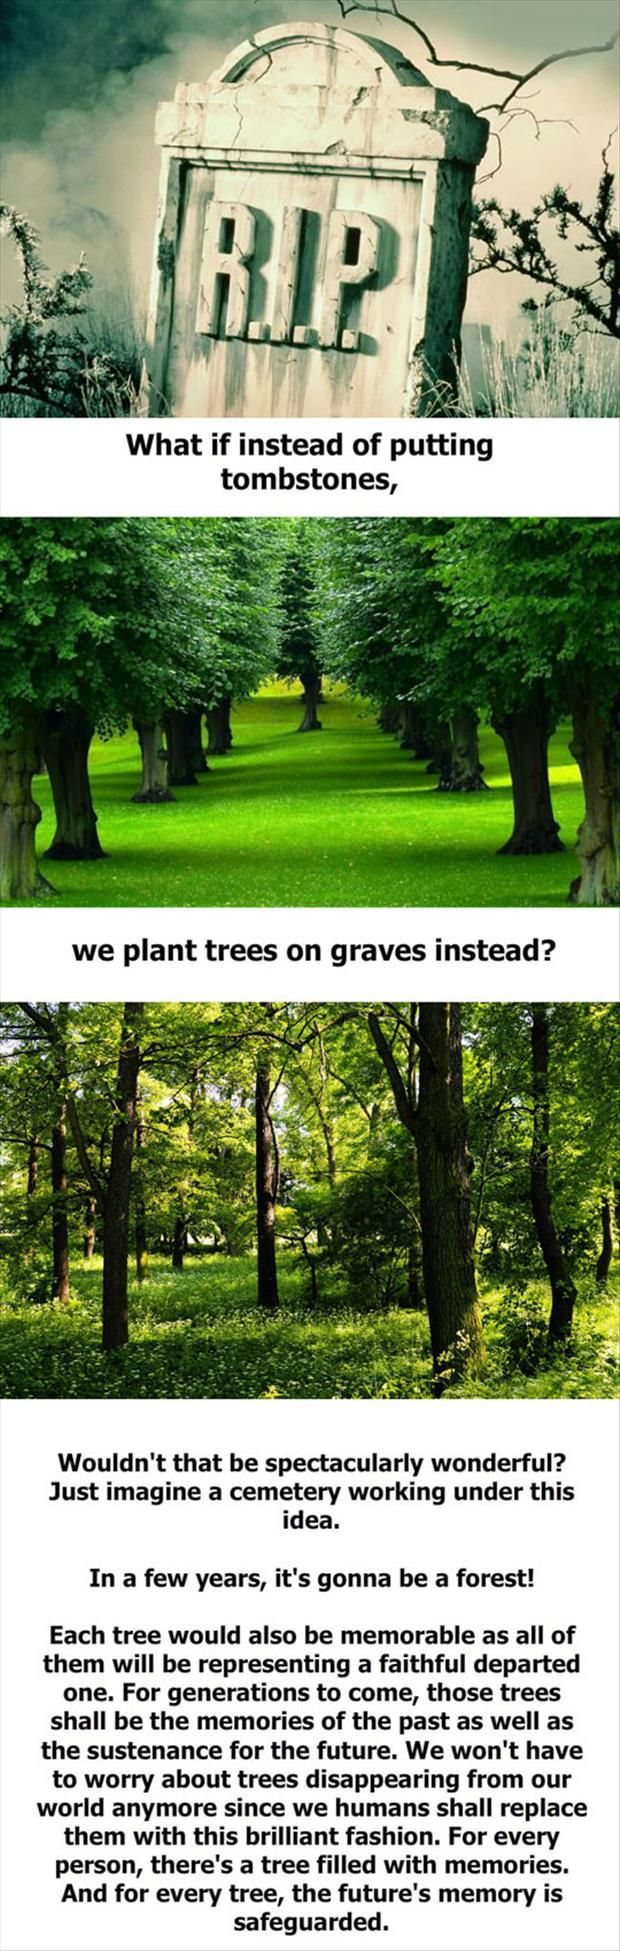 I would like to be buried under a tree.